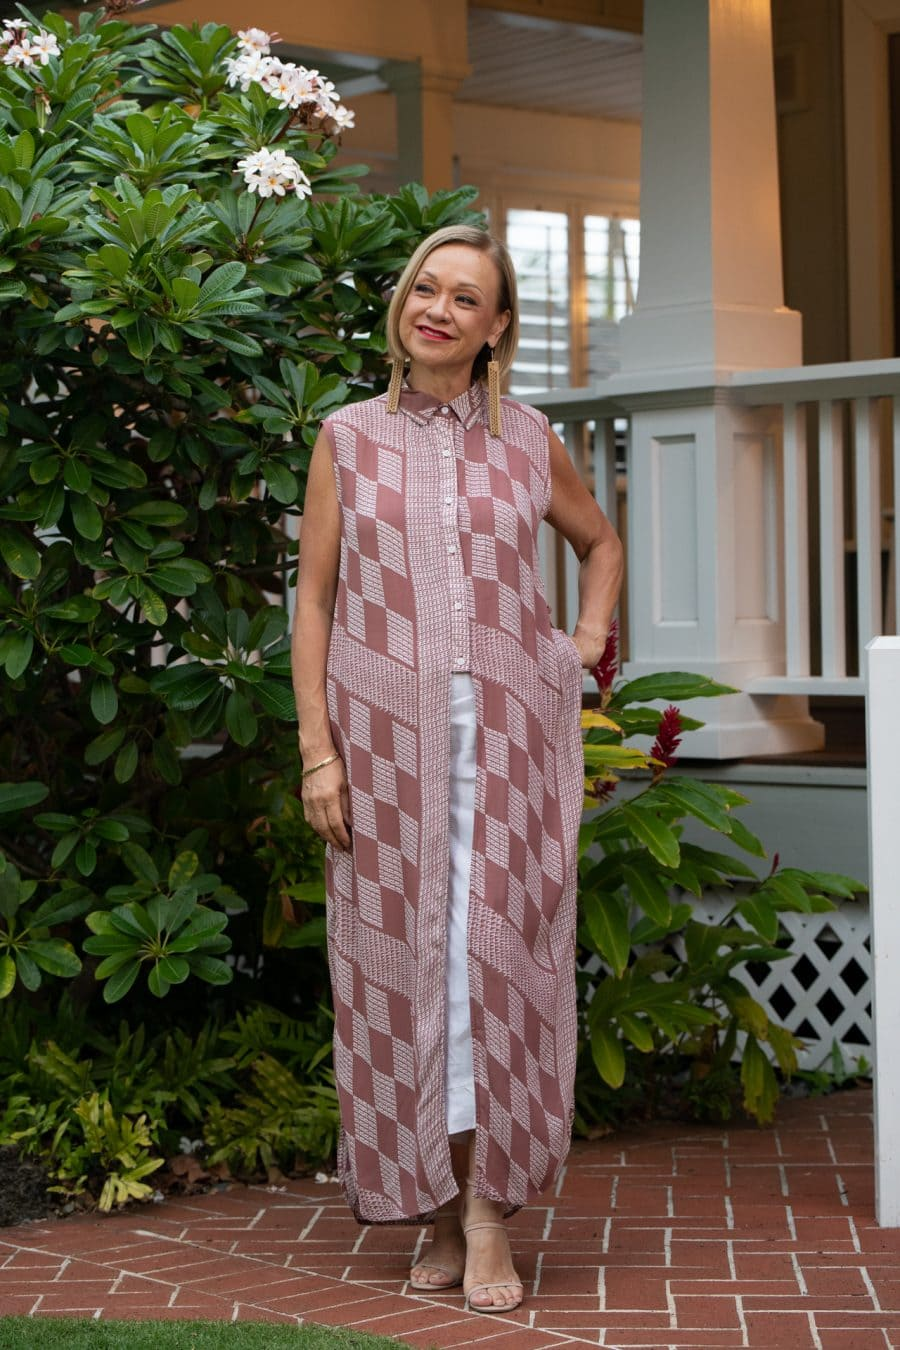 Model wearing Hualalai Top in Fired Brick White Kamehahema Pattern - Front View